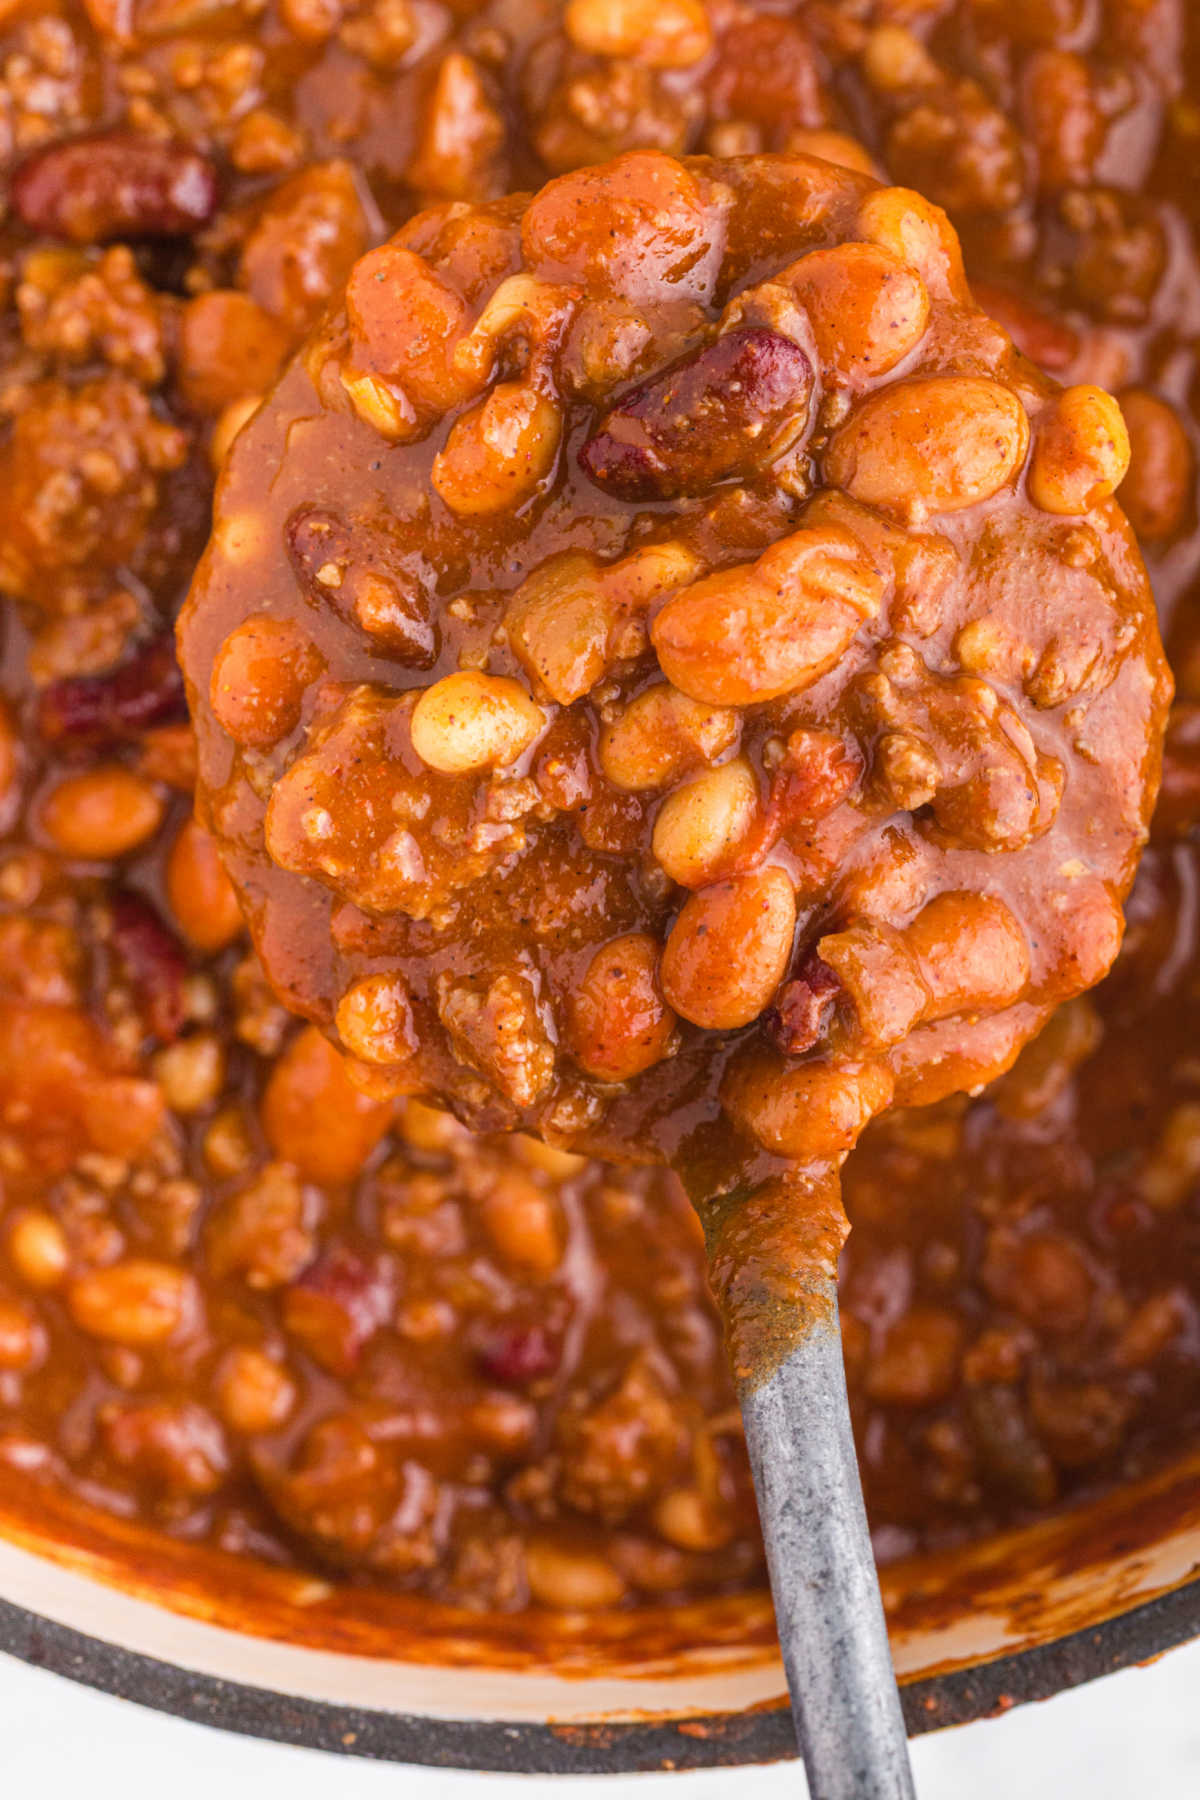 Close up photo of chili on a spoon.